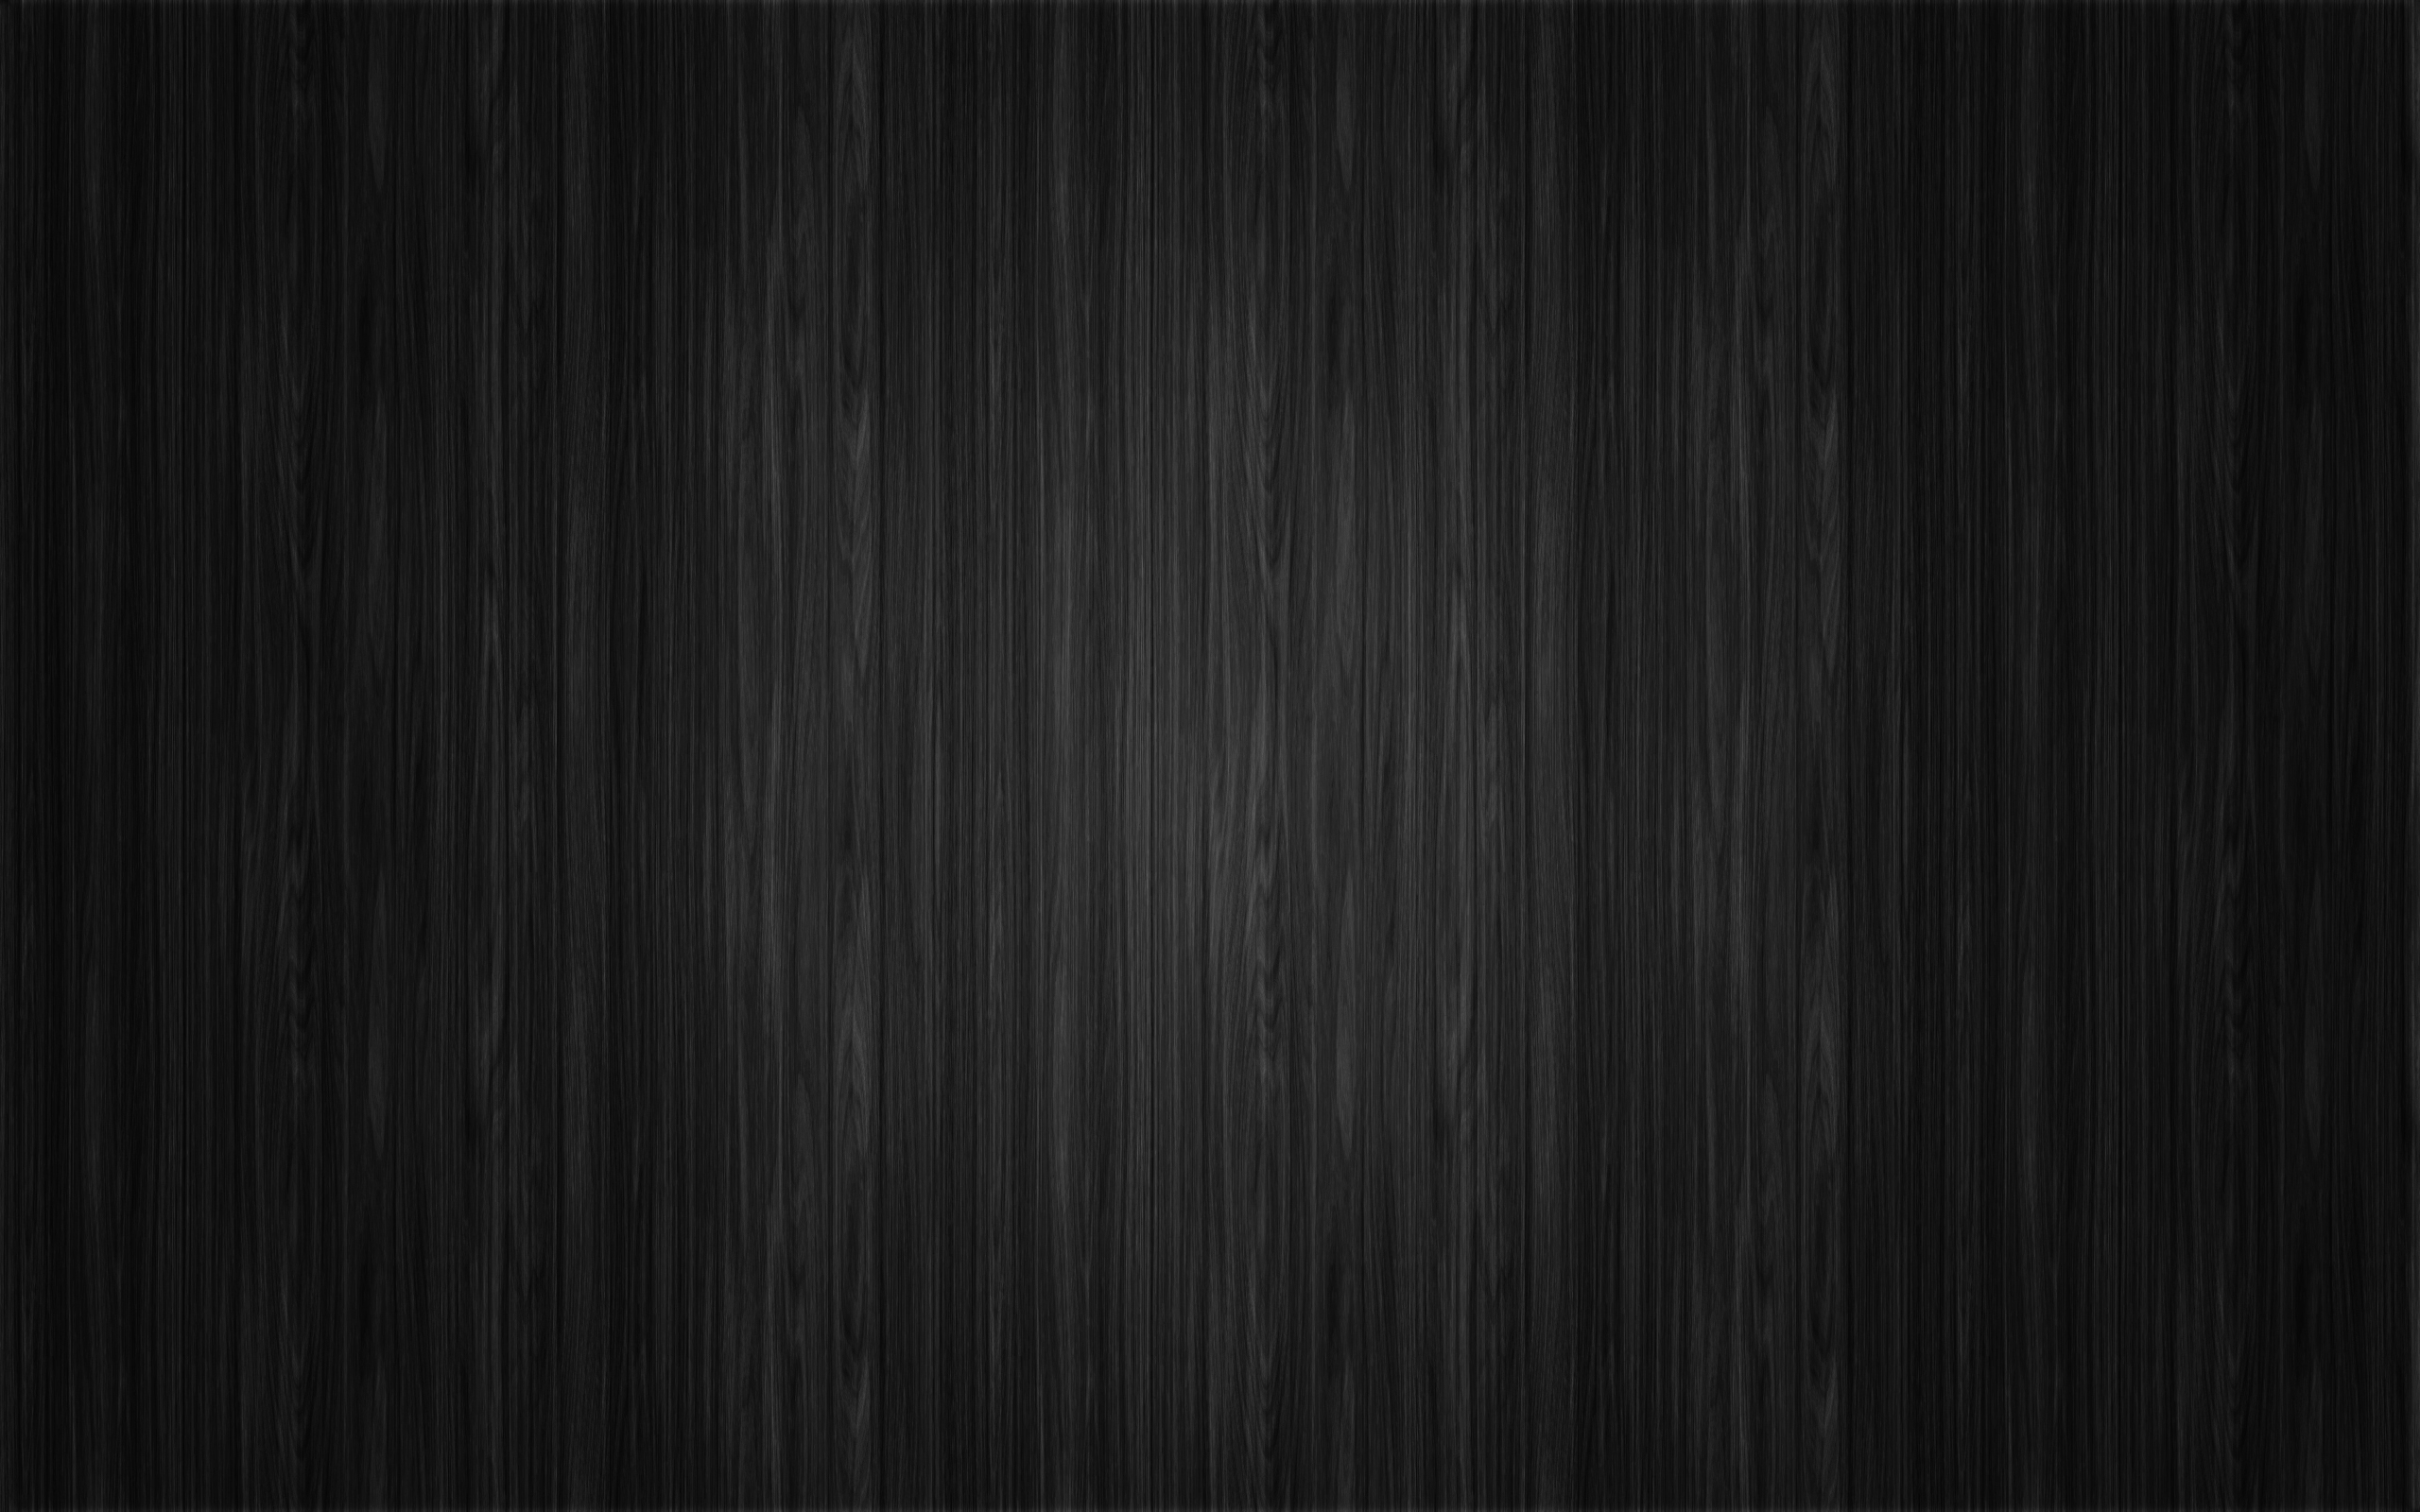 Dark Wood clipart wallpaper Pinterest black Backgrounds Wood wallpapers